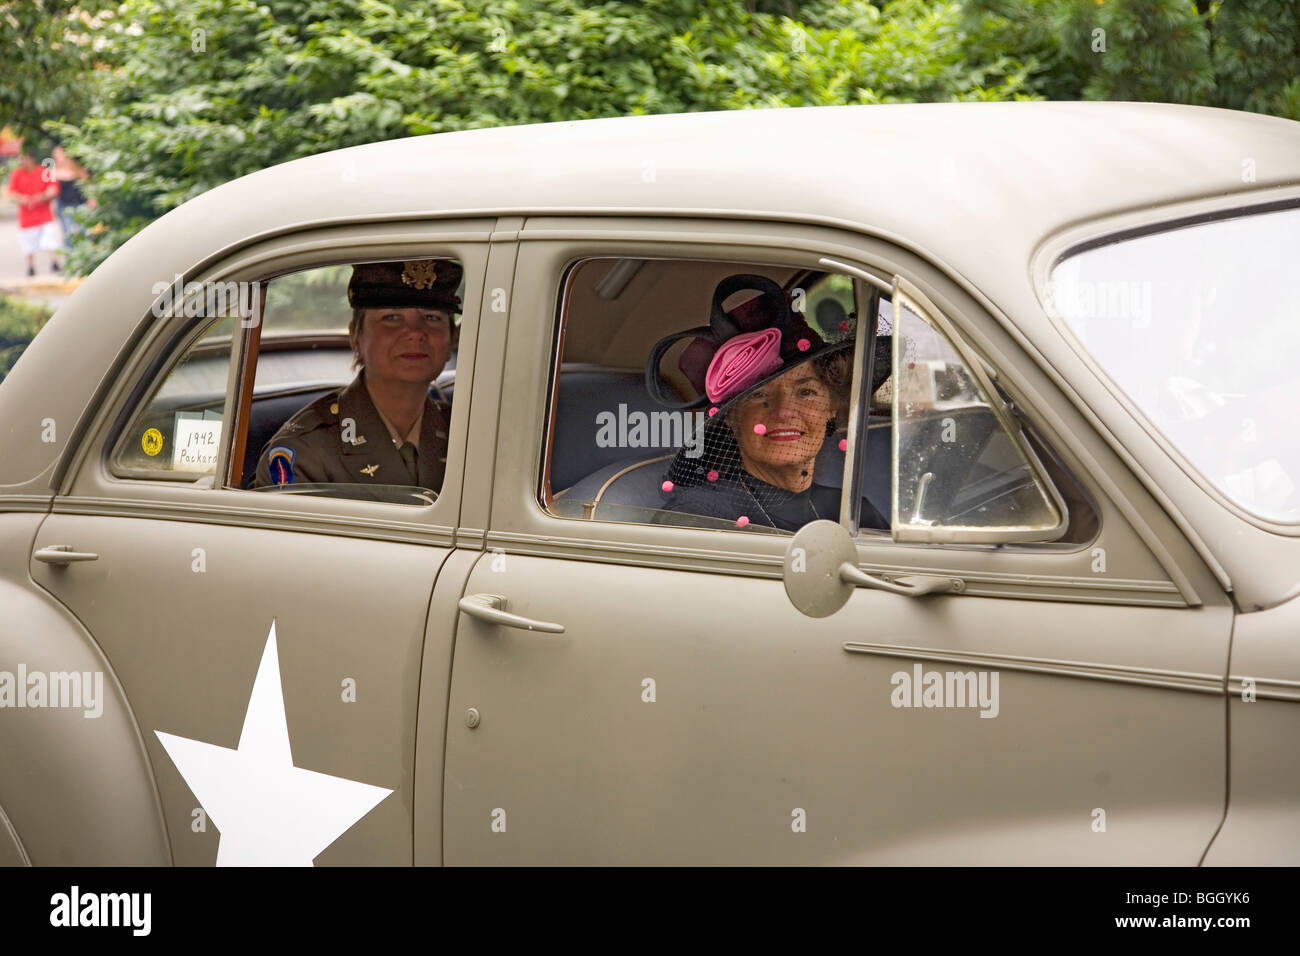 Reenactment of World War II 1940s style car in Reading, PA held ...